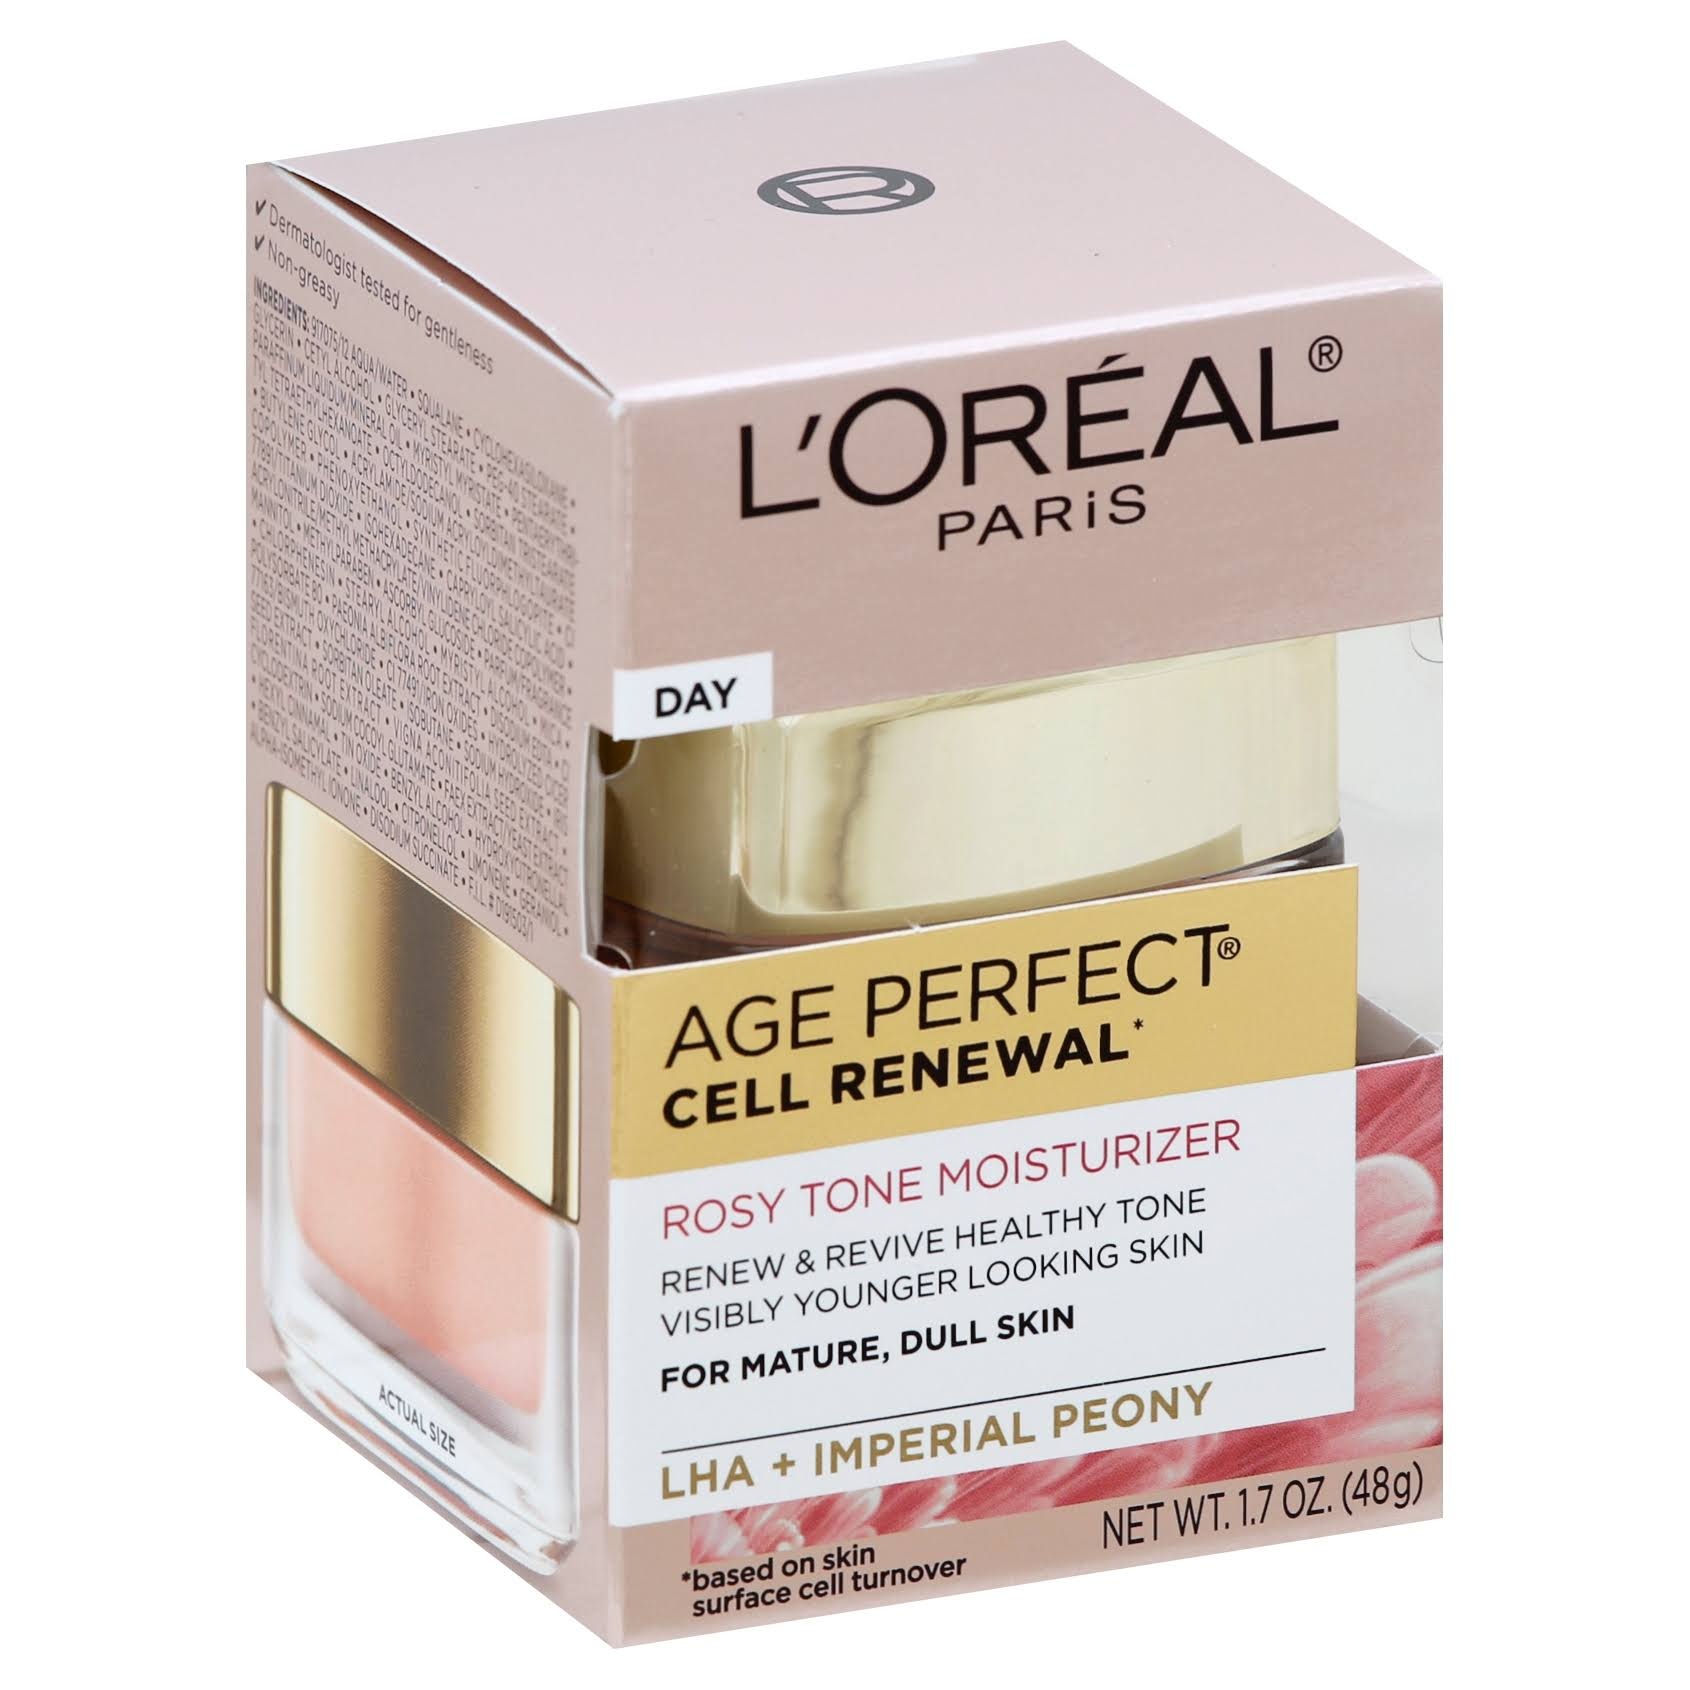 L'Oreal Paris Skin Care Age Perfect Cell Renewal Rosy Tone Moisturizer - 1.7oz